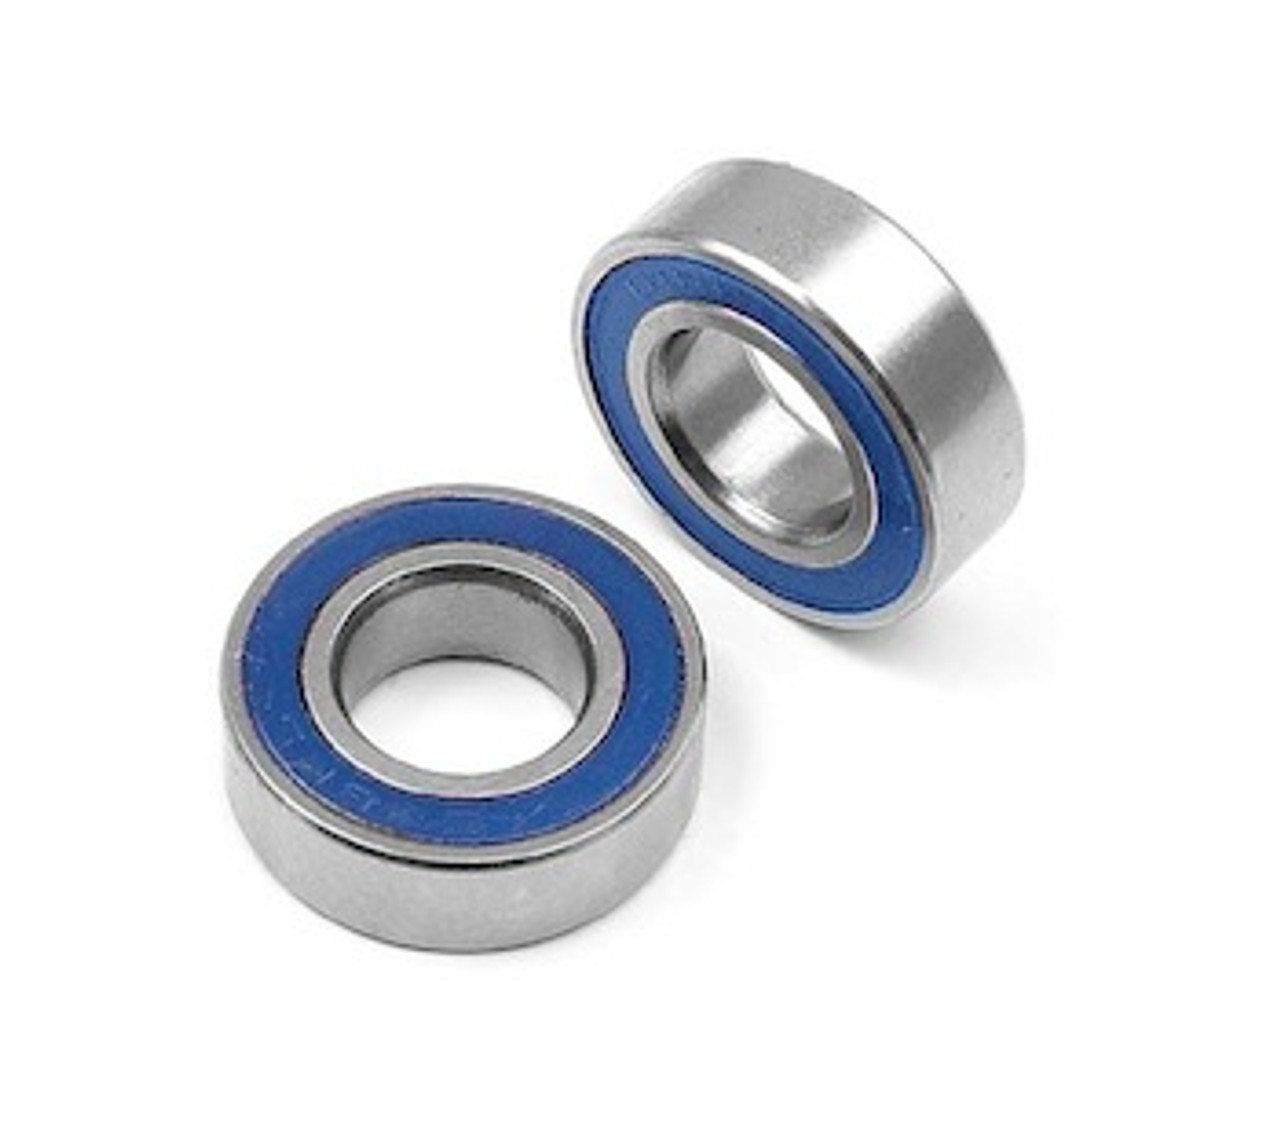 Bearings Metric Series 10x15x4 MM Rubber Sealed (2 Pack) (6700 2RS)